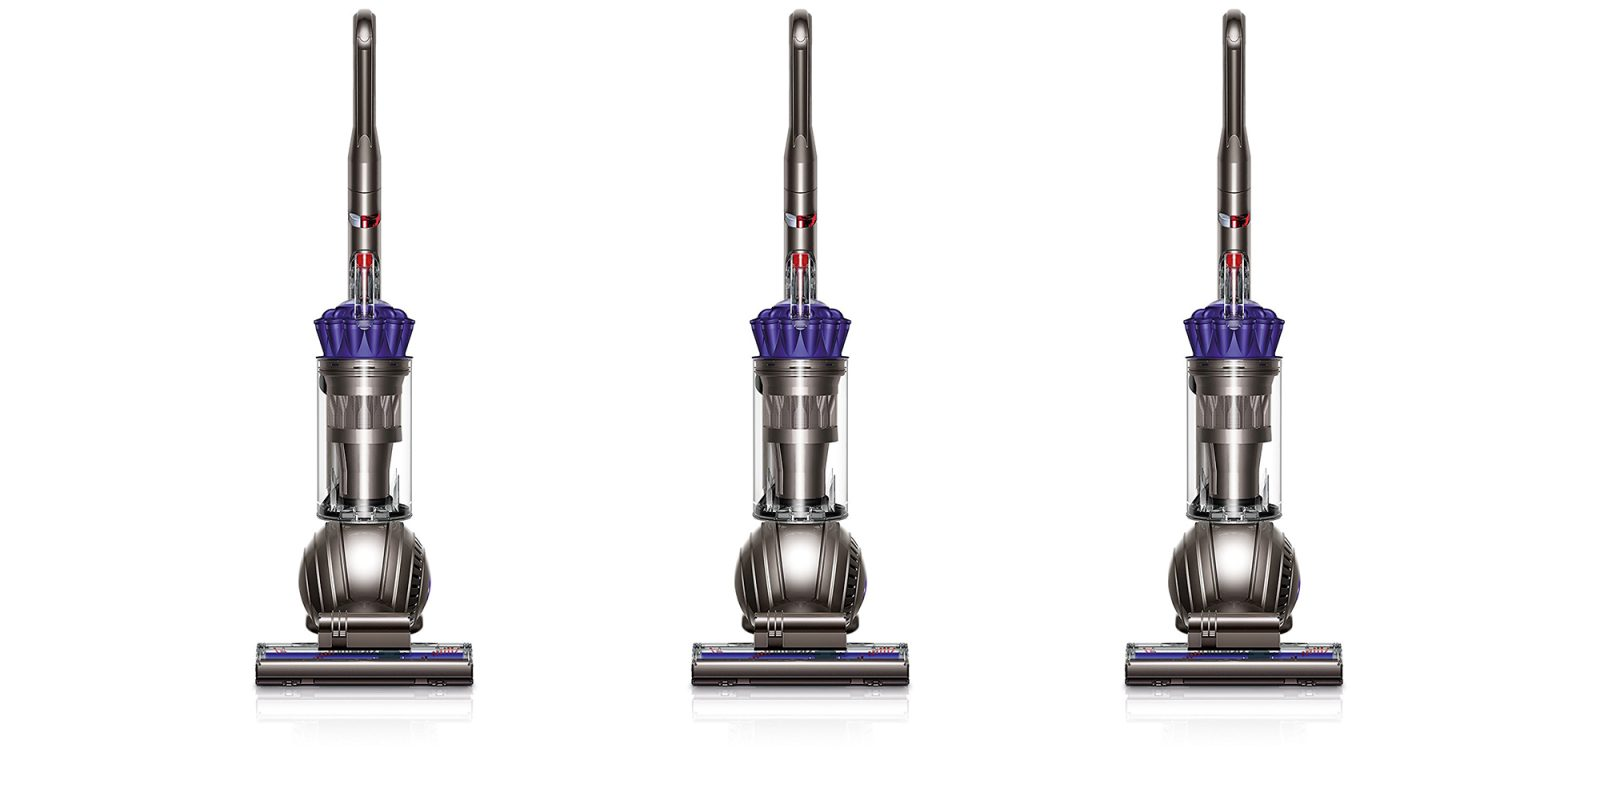 Dyson - Page 2 of 14 - 9to5Toys